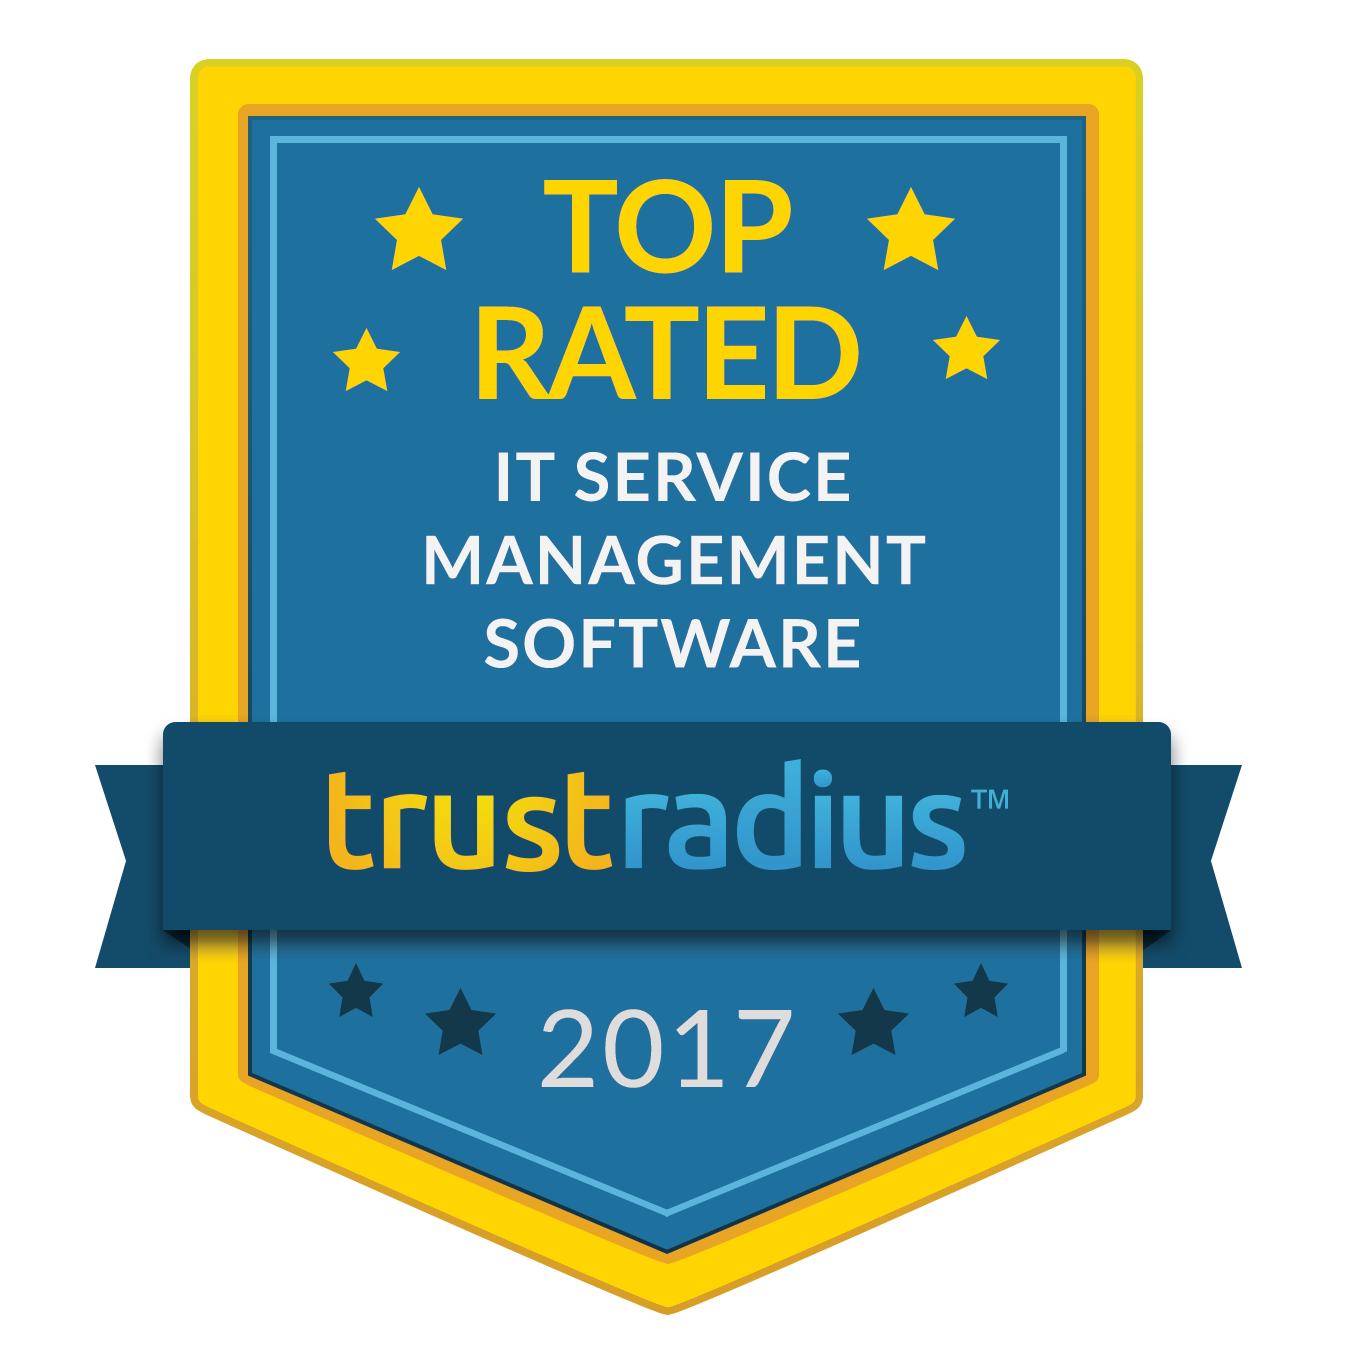 Trustradius Top Rated